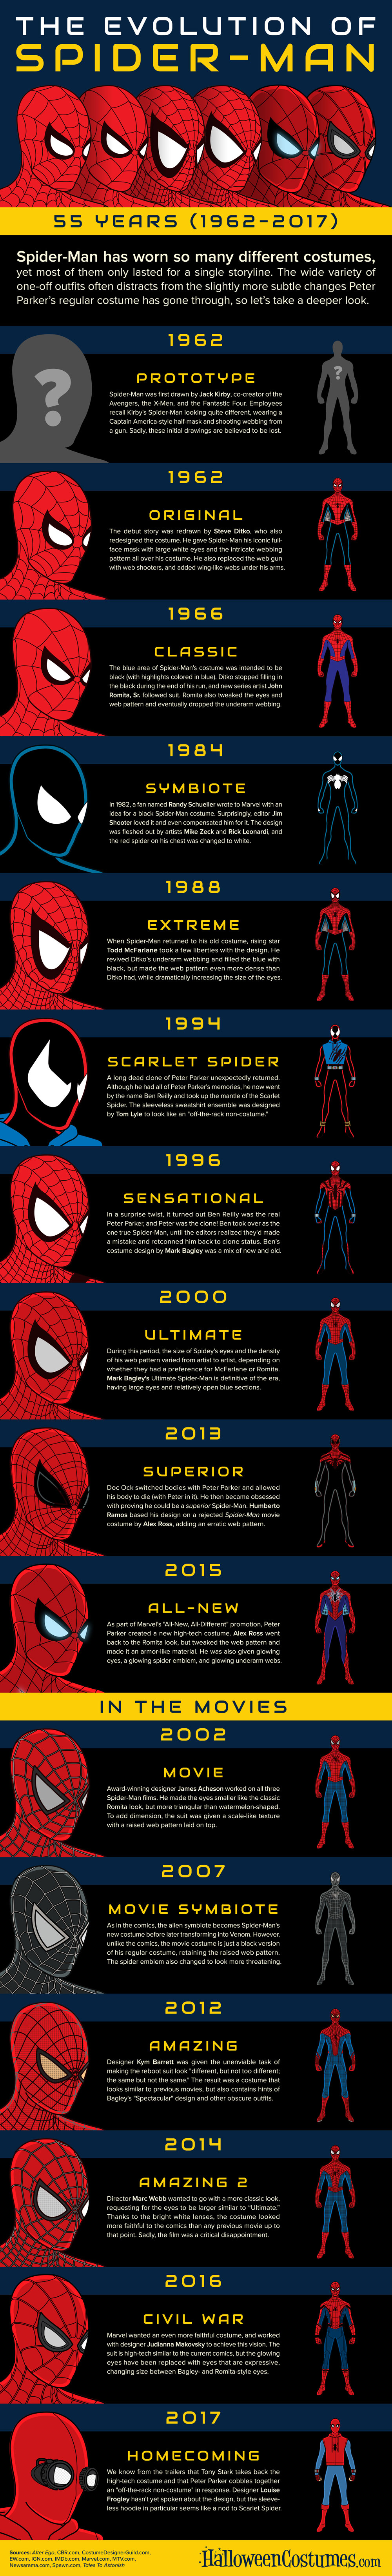 The Evolution of Spider-Man